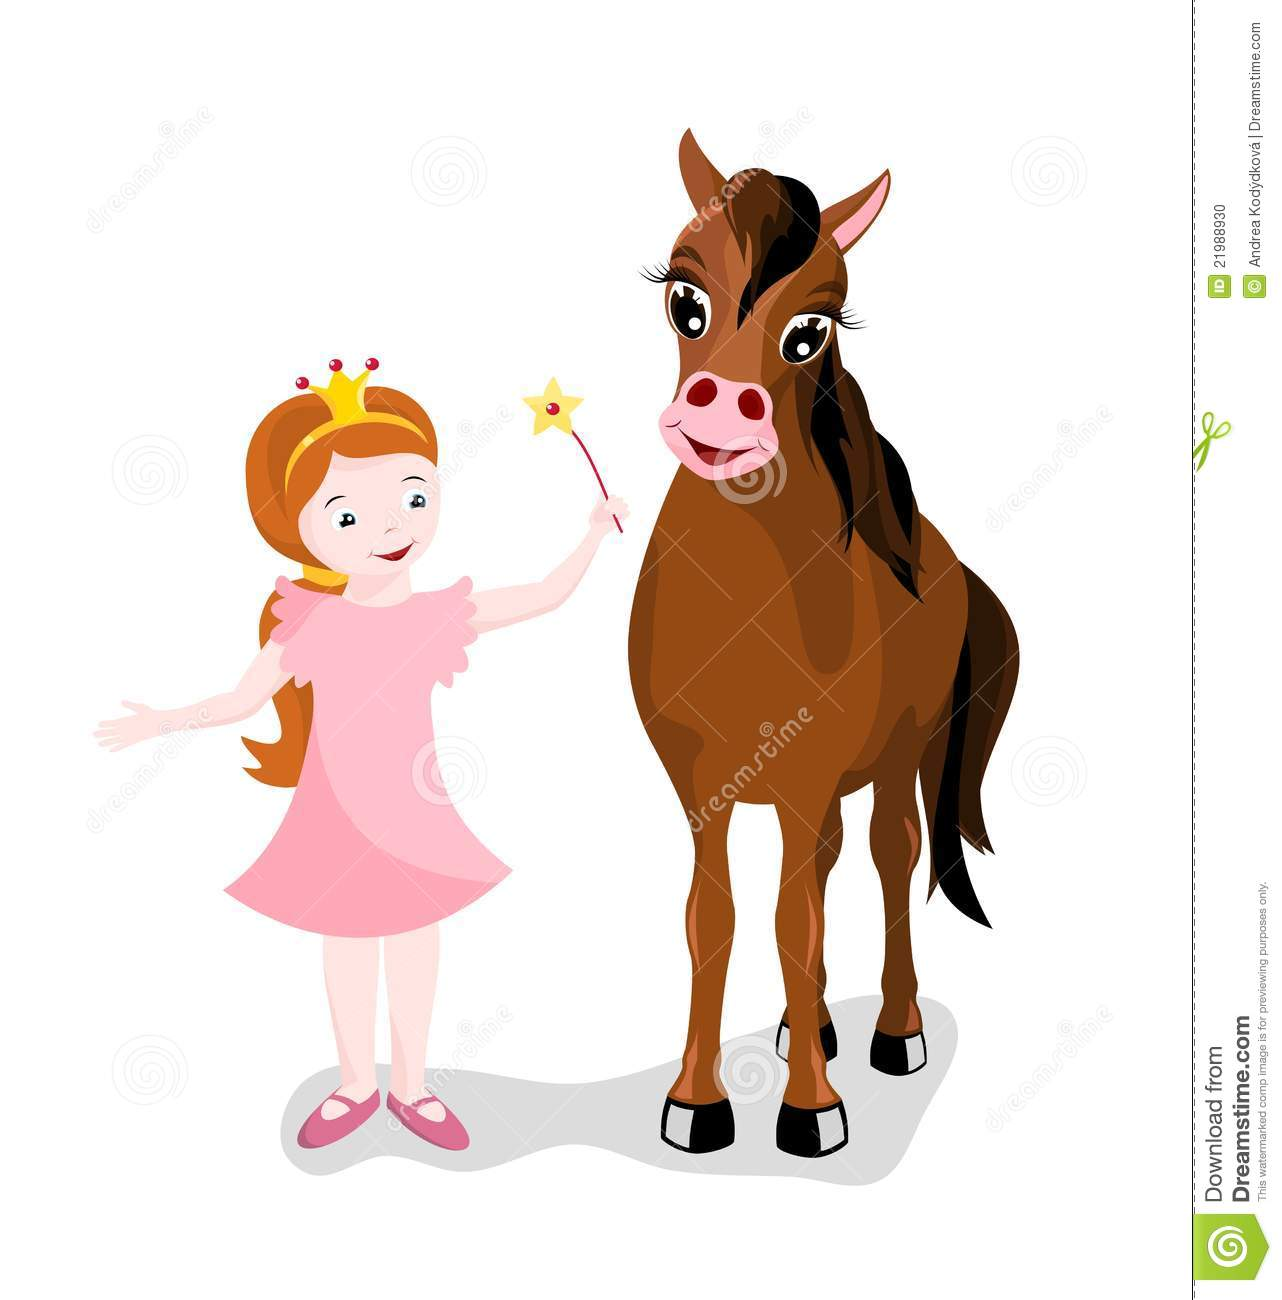 Petite princesse avec son cheval photo stock image 21988930 - Princesse cheval ...